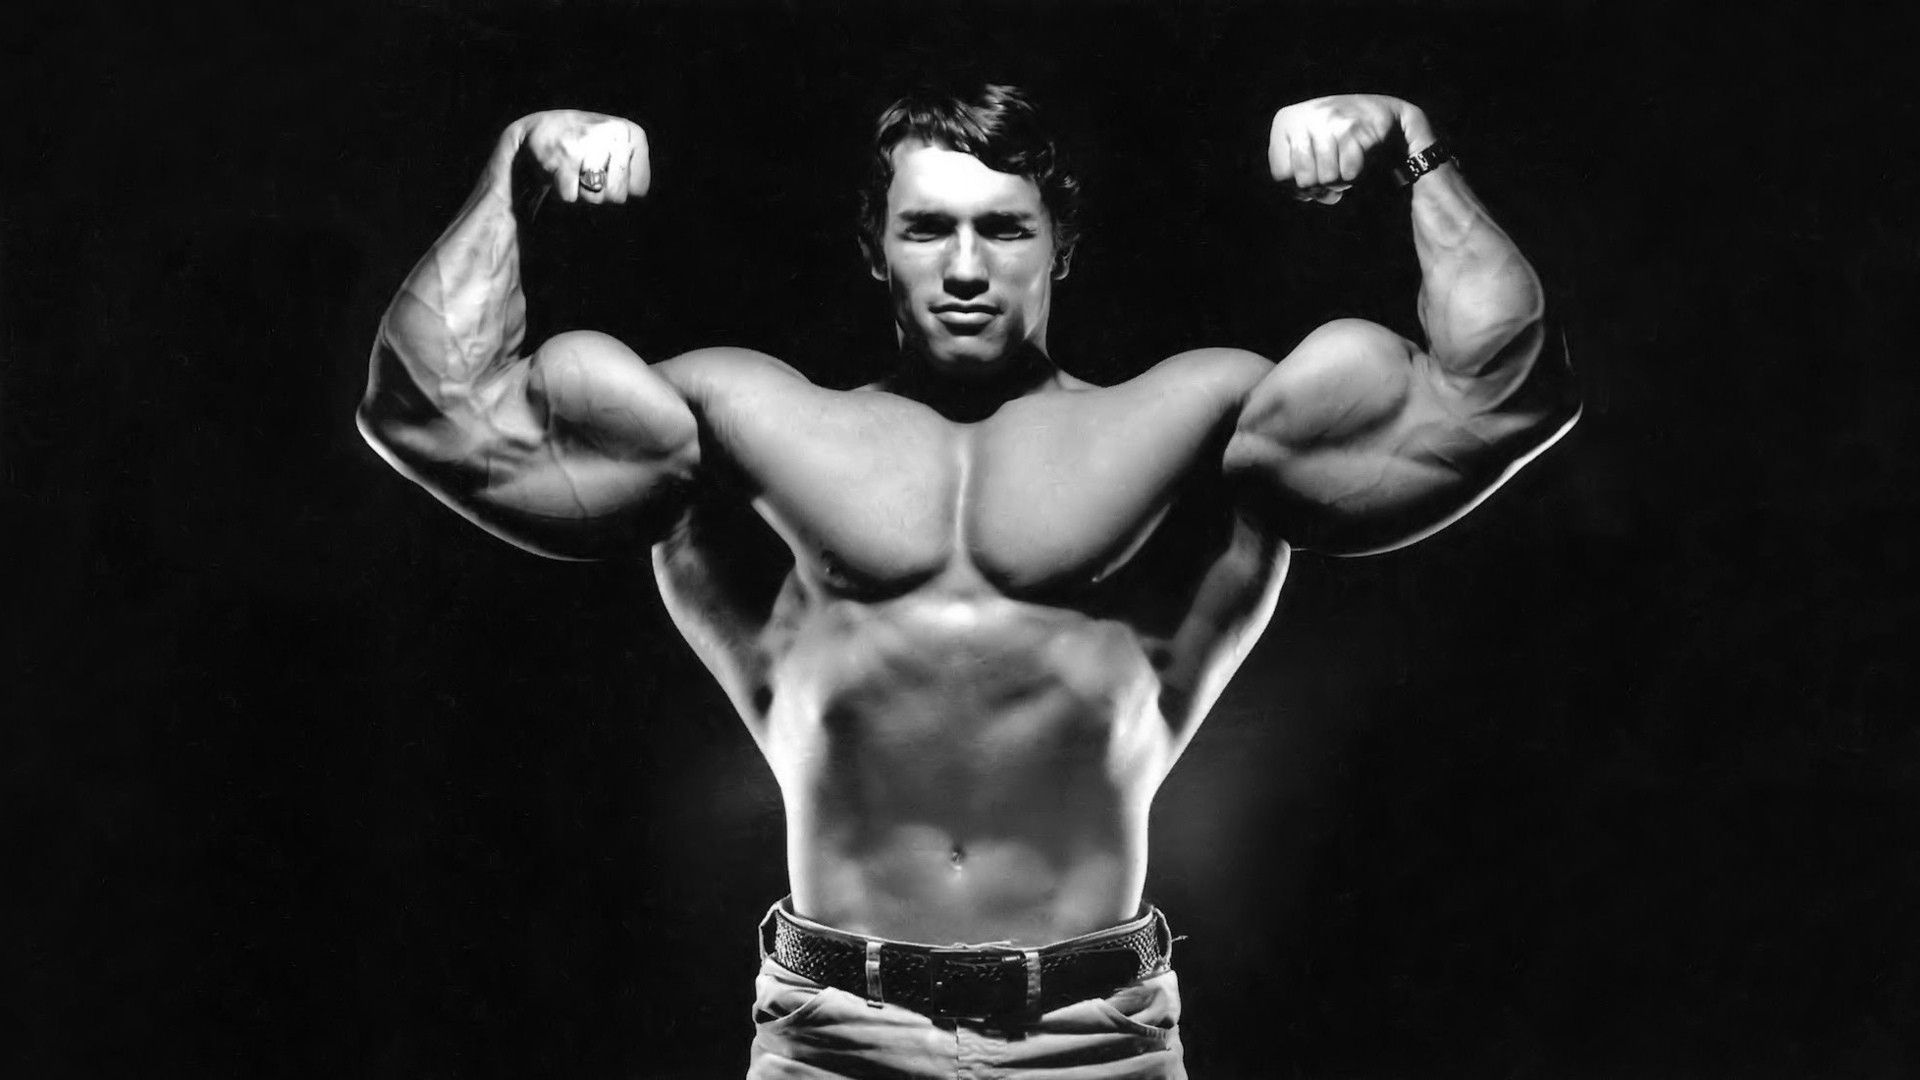 arnold schwarzenegger wallpaper | celebrities wallpaper | pinterest